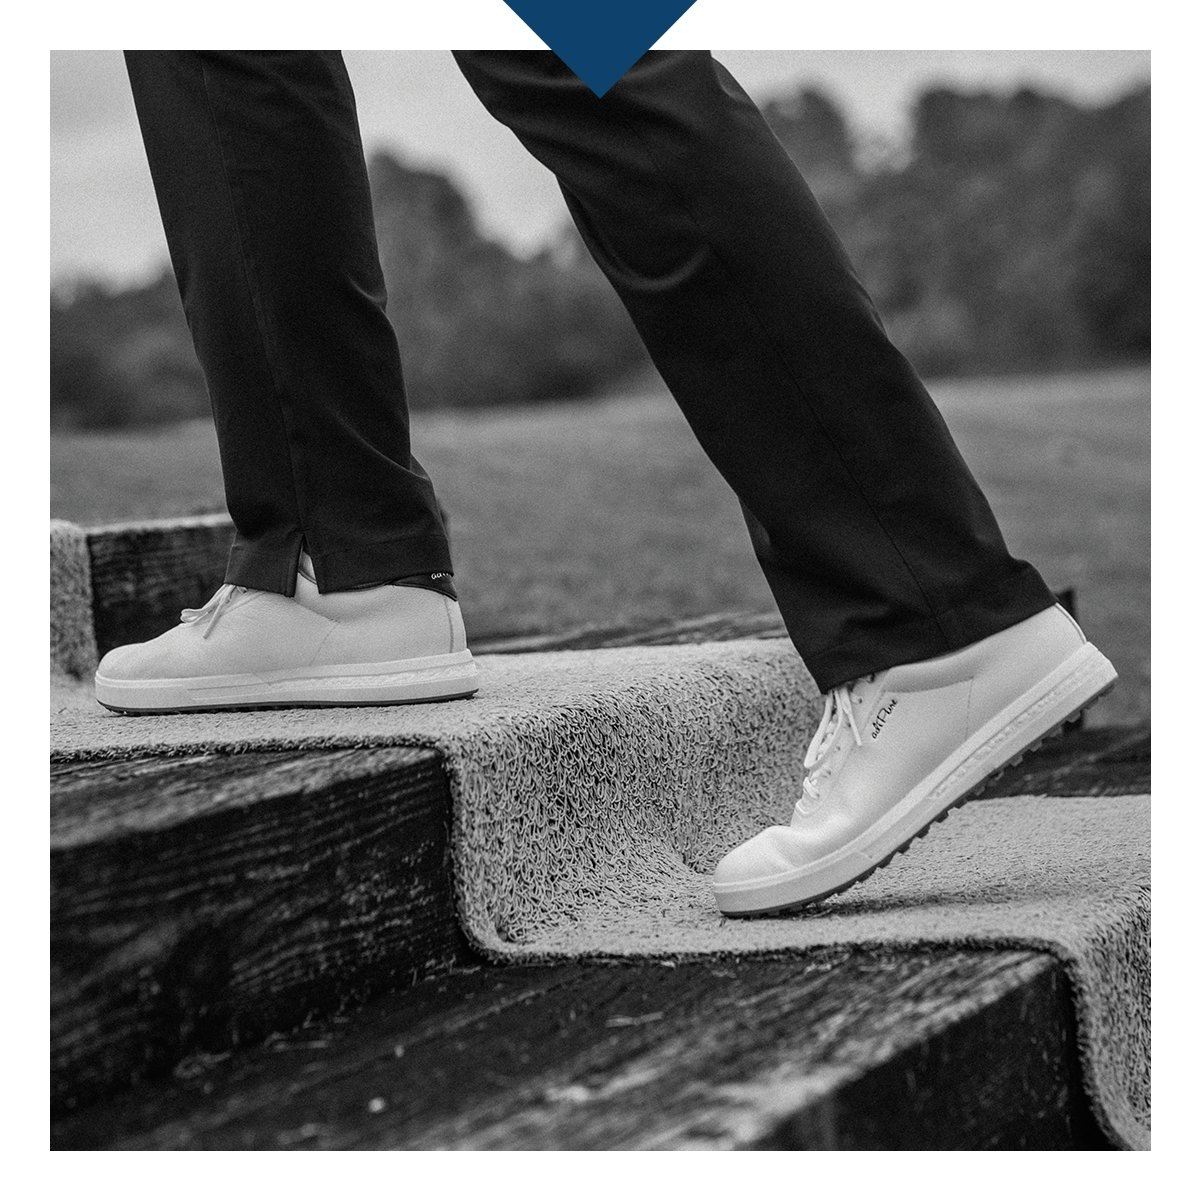 ead981fd A step above. Classic style meets premium performance with the endless  energy of #BOOST in the all-new #adiPure SP. Coming 3/1. http://adidas .com/us/adipure ...